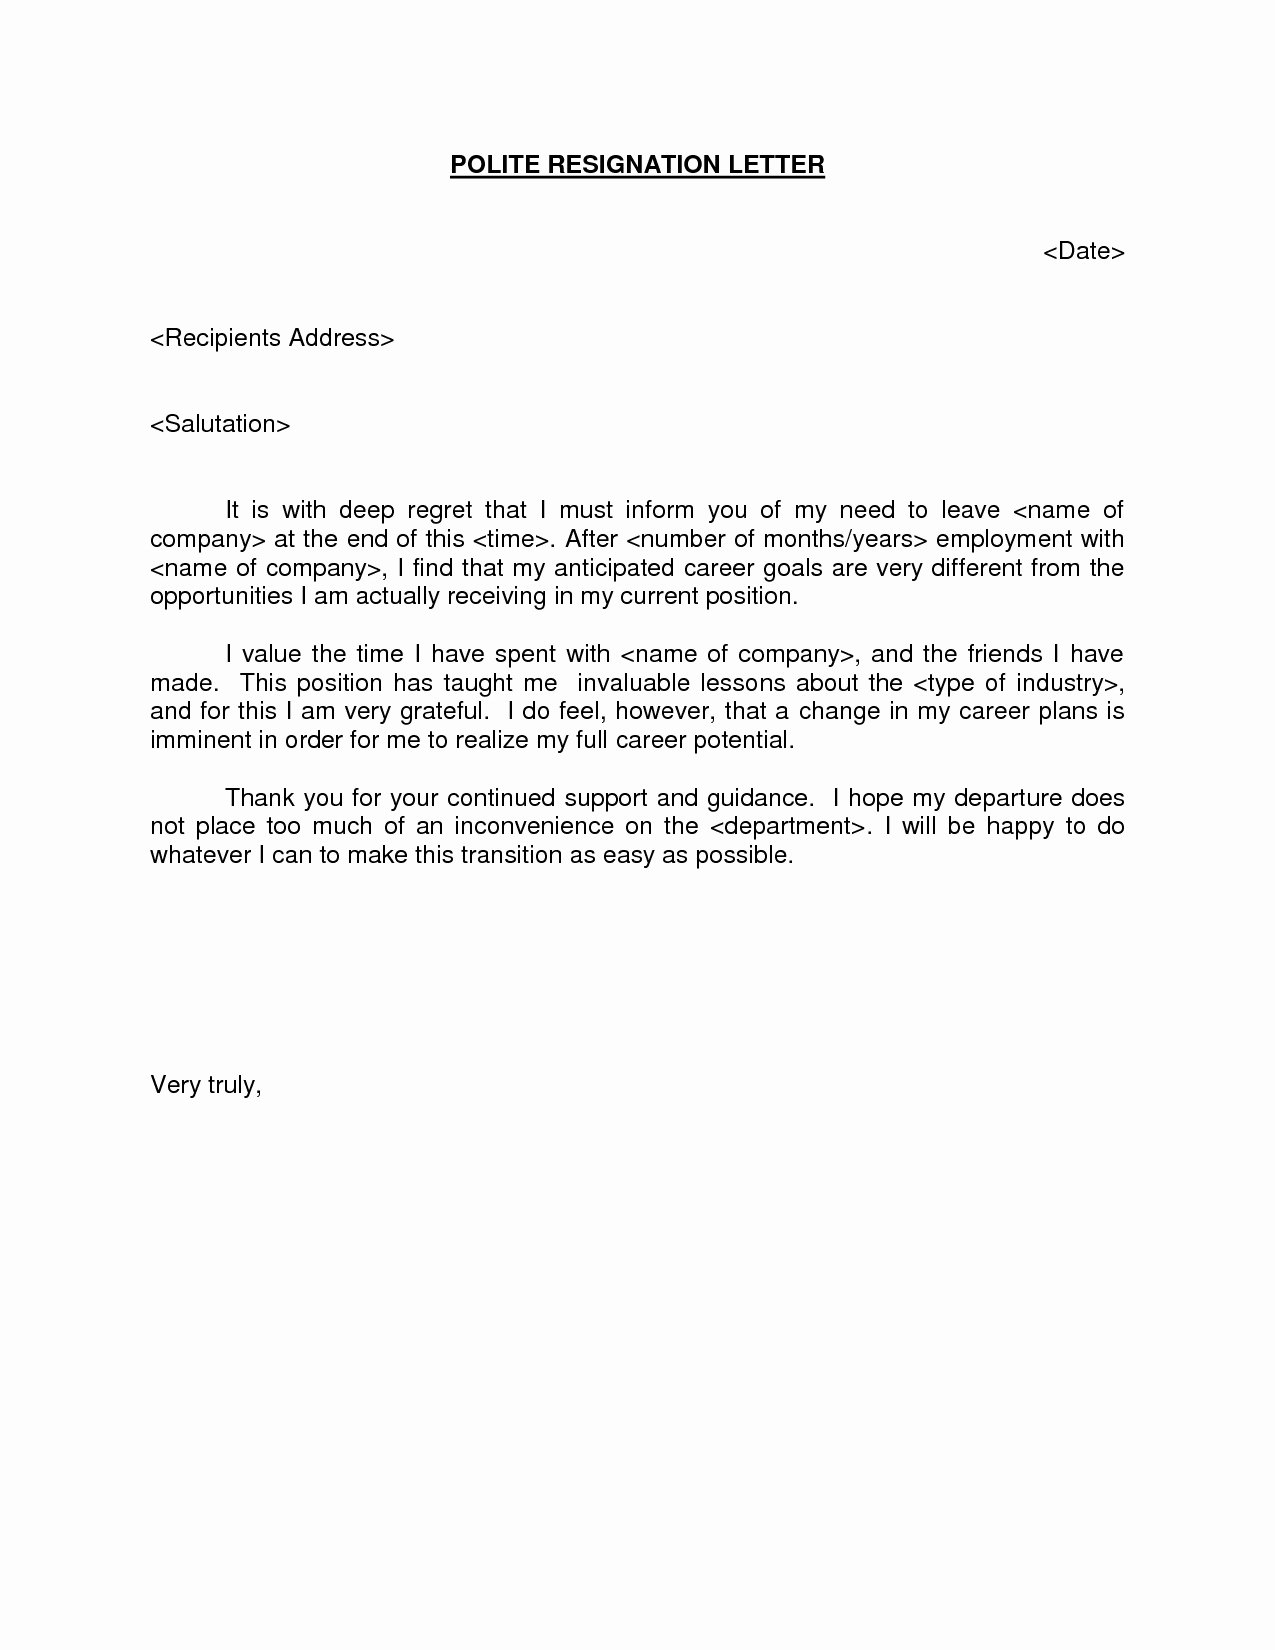 Appointment Reminder Letter Template Best Of Appointment Reminder Letter Template Medical Examples